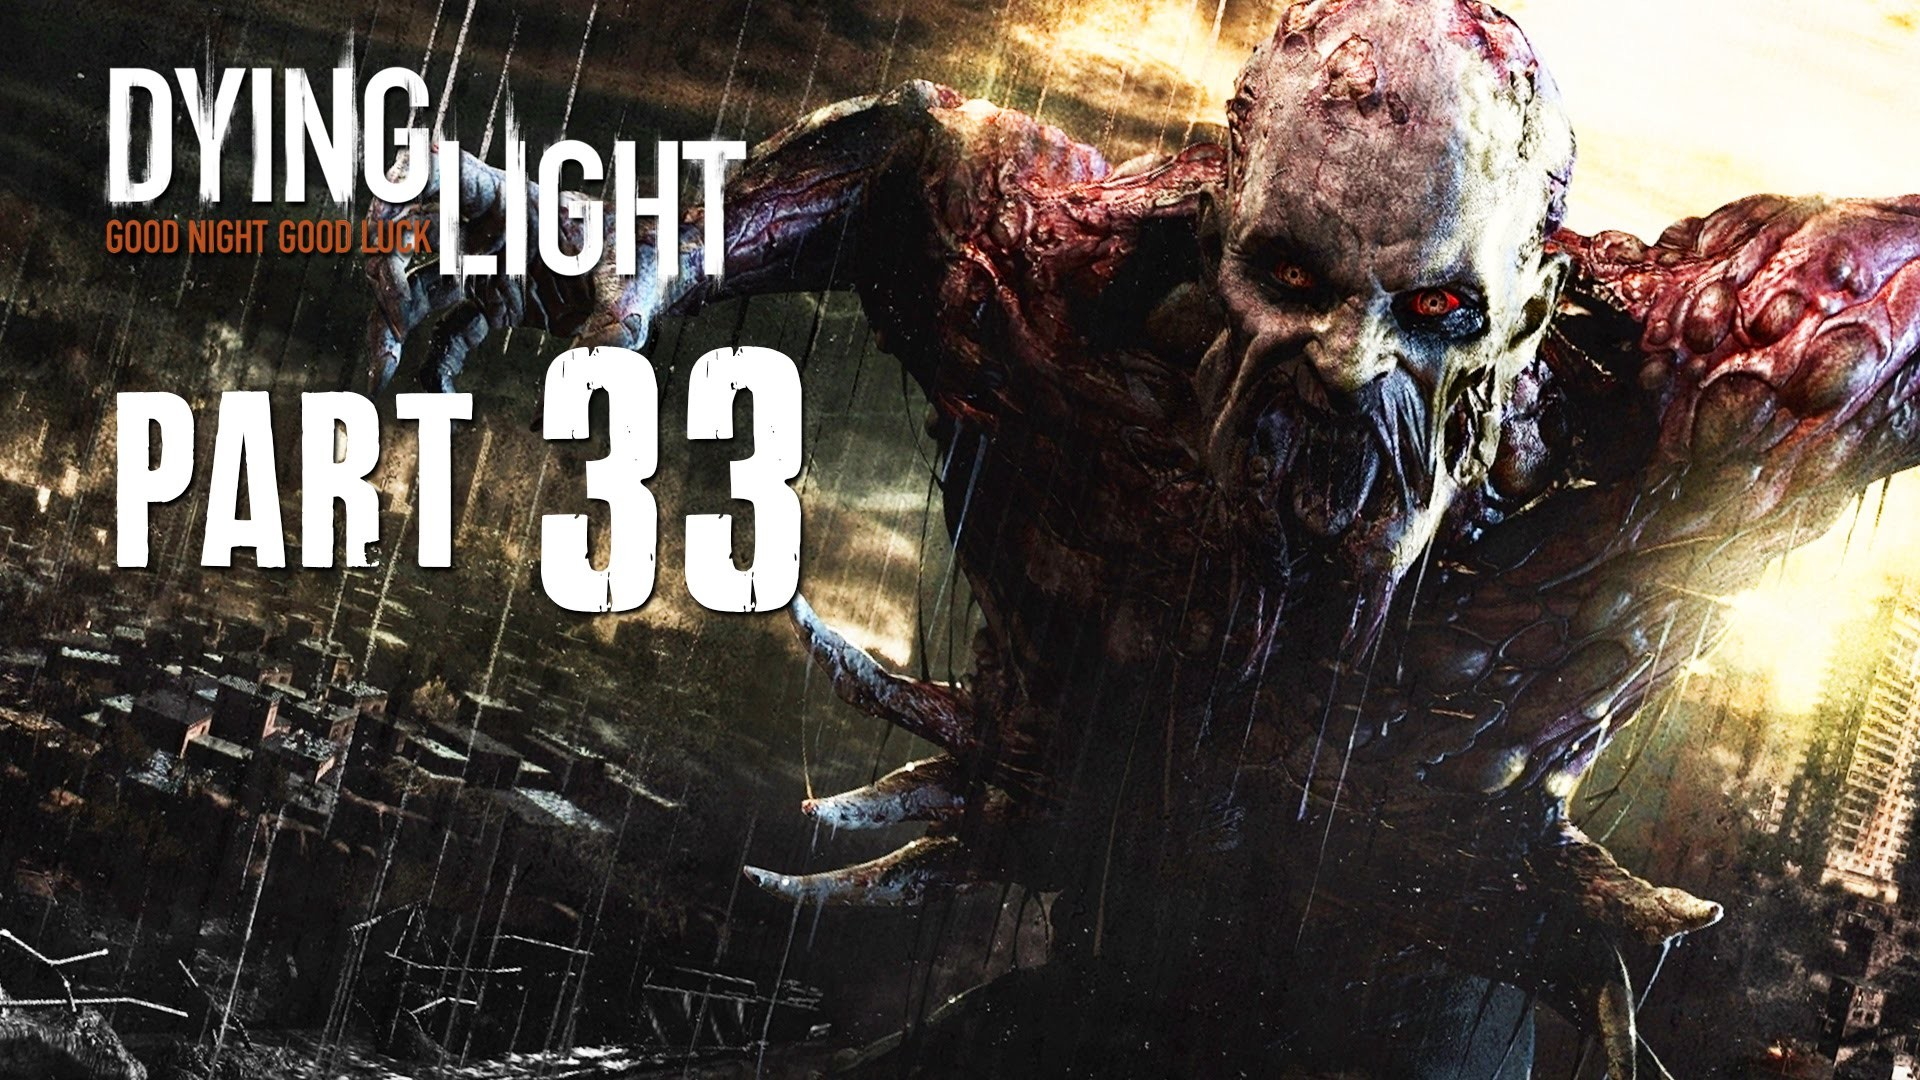 Dying Light Wallpaper 1080p 95 Images